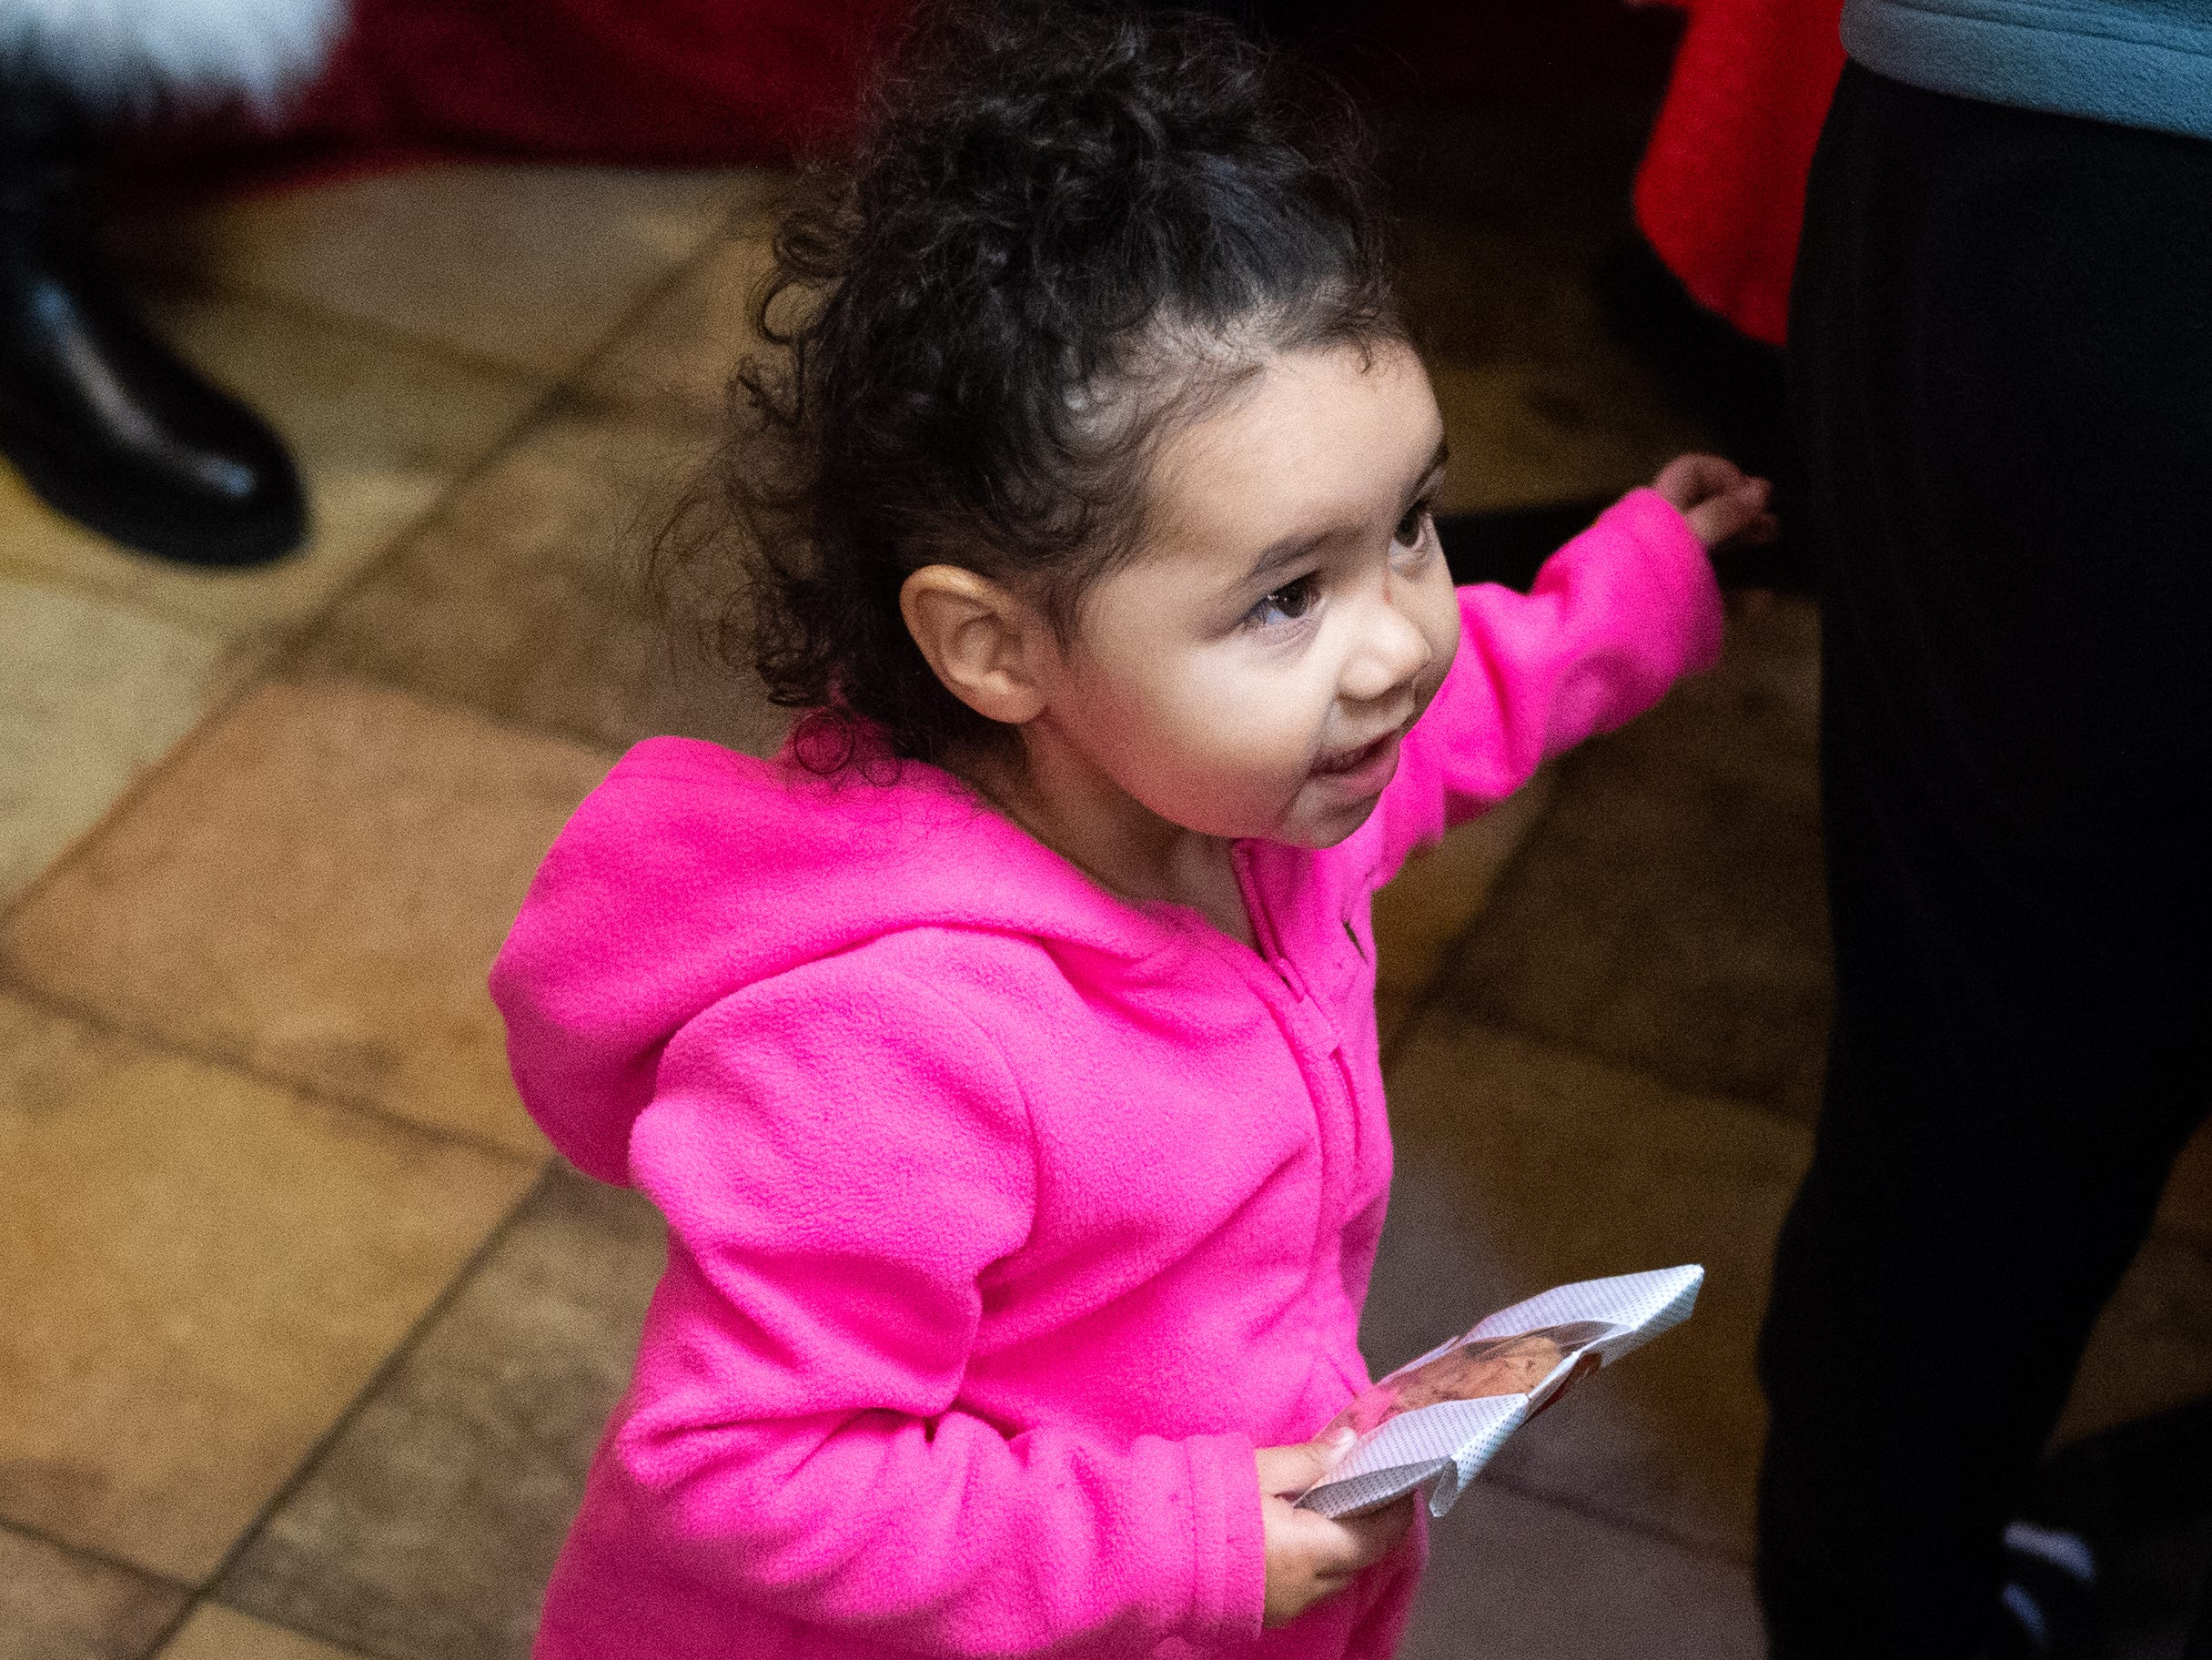 Children like Isabella Maldonado, 1, receive a cookie after sitting on Santa's lap during the Dinner with Santa and Santa Cow event at Chick-fil-A in East York, December 19, 2018.